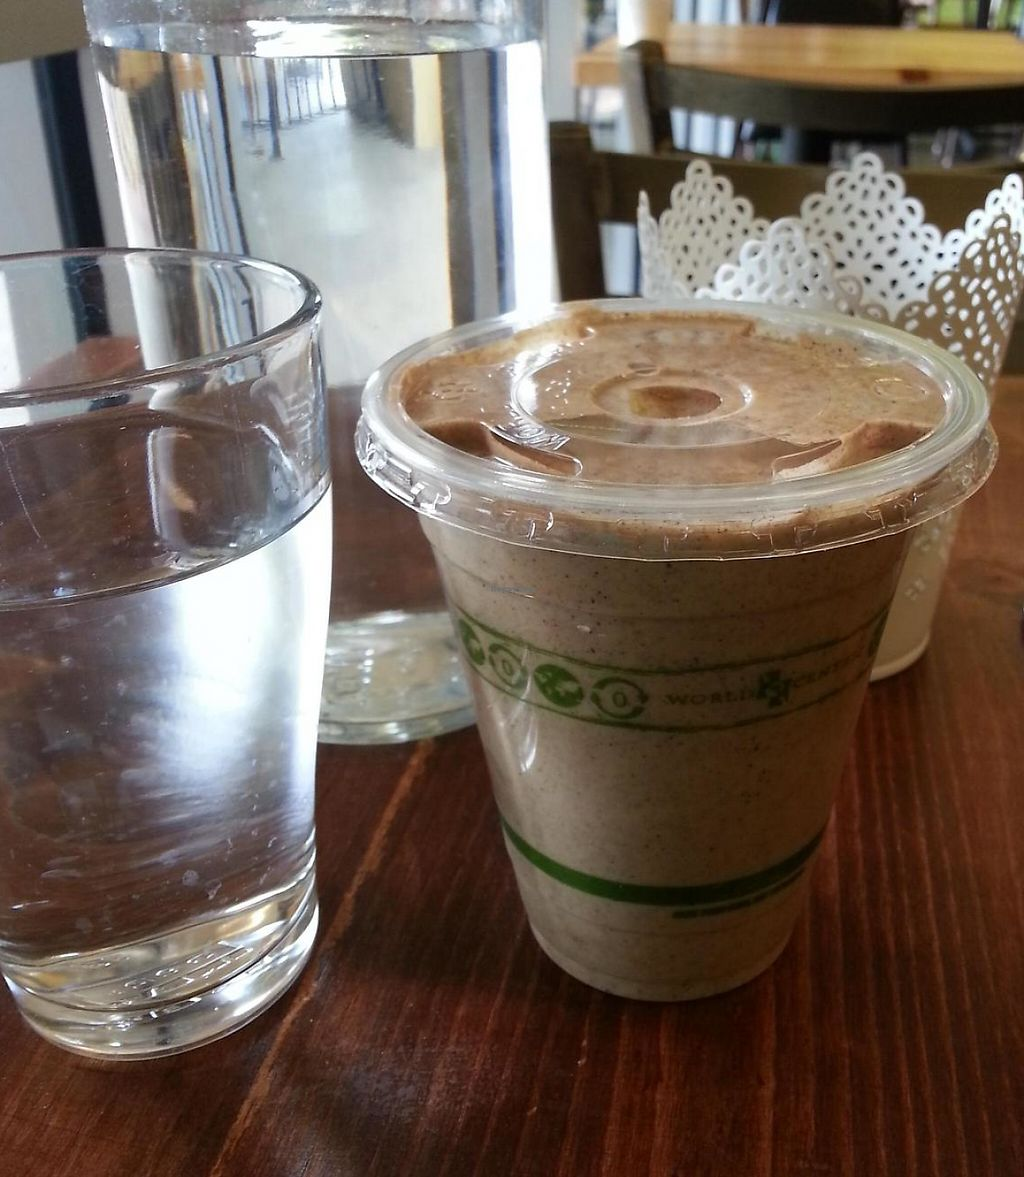 """Photo of 24 Carrots  by <a href=""""/members/profile/radtechg9"""">radtechg9</a> <br/>Peanut butter, chocolate , banana smoothie <br/> March 30, 2014  - <a href='/contact/abuse/image/44118/188674'>Report</a>"""